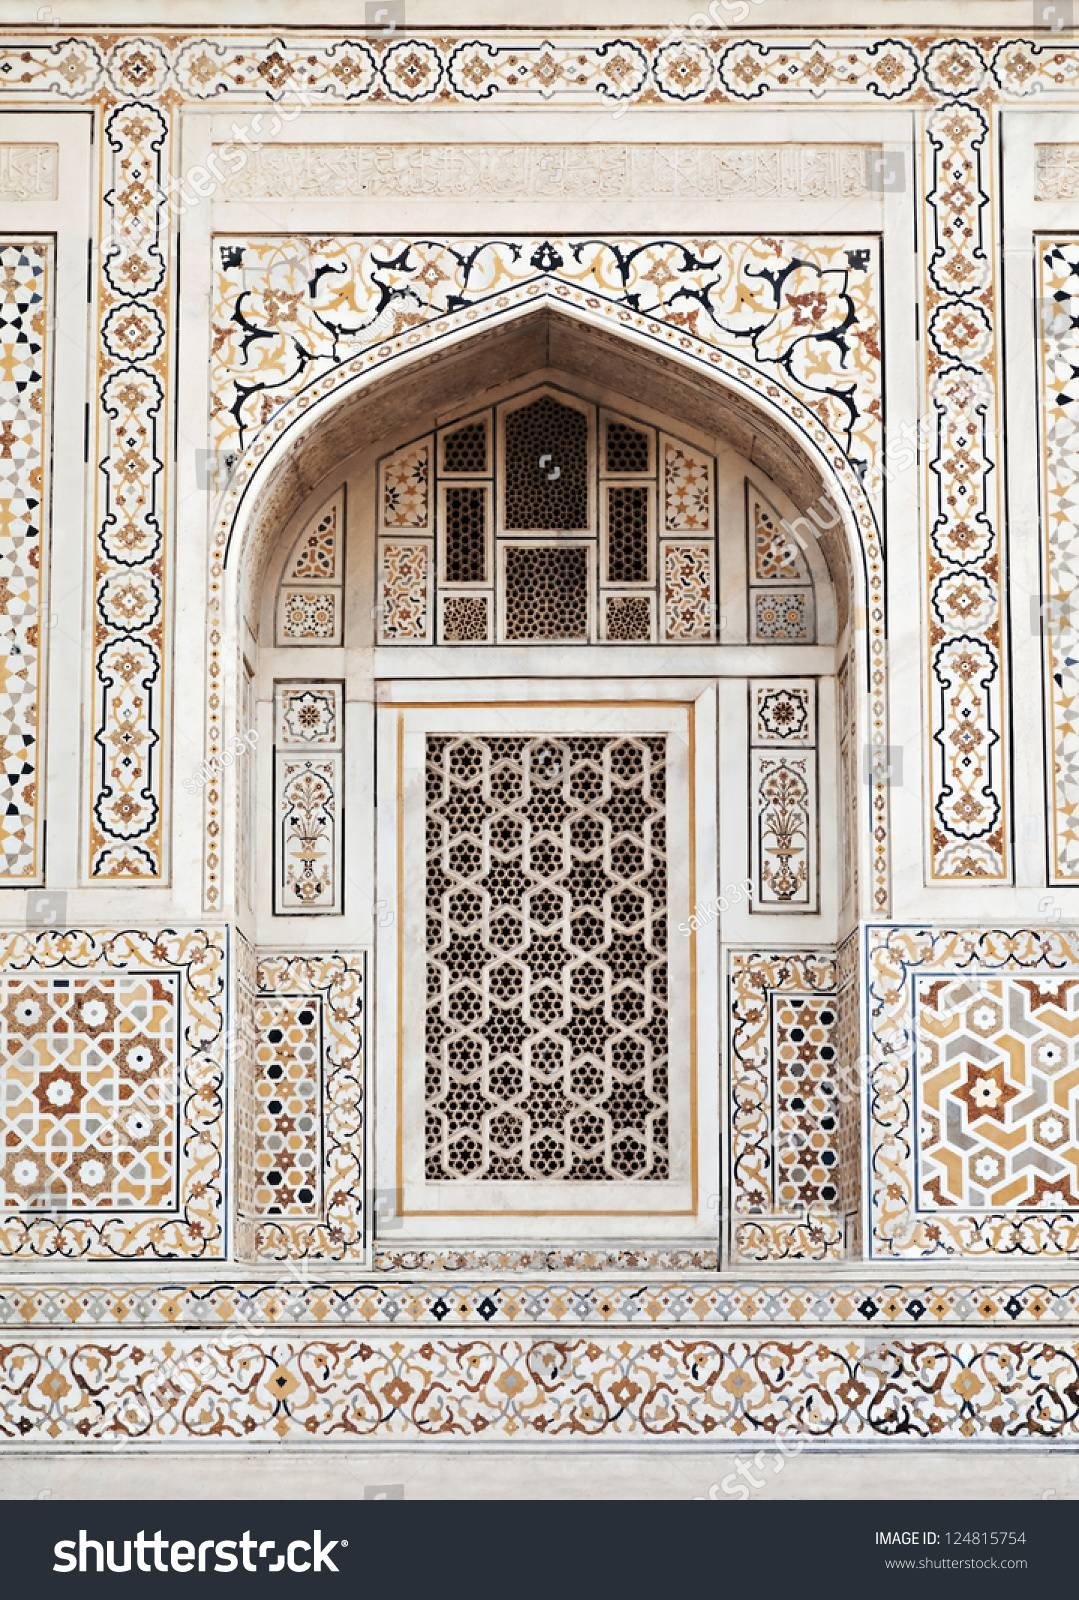 Agra India April 09 Pattern On Stock Photo 124815754 – Shutterstock Throughout Most Up To Date Taj Mahal Wall Art (View 4 of 25)